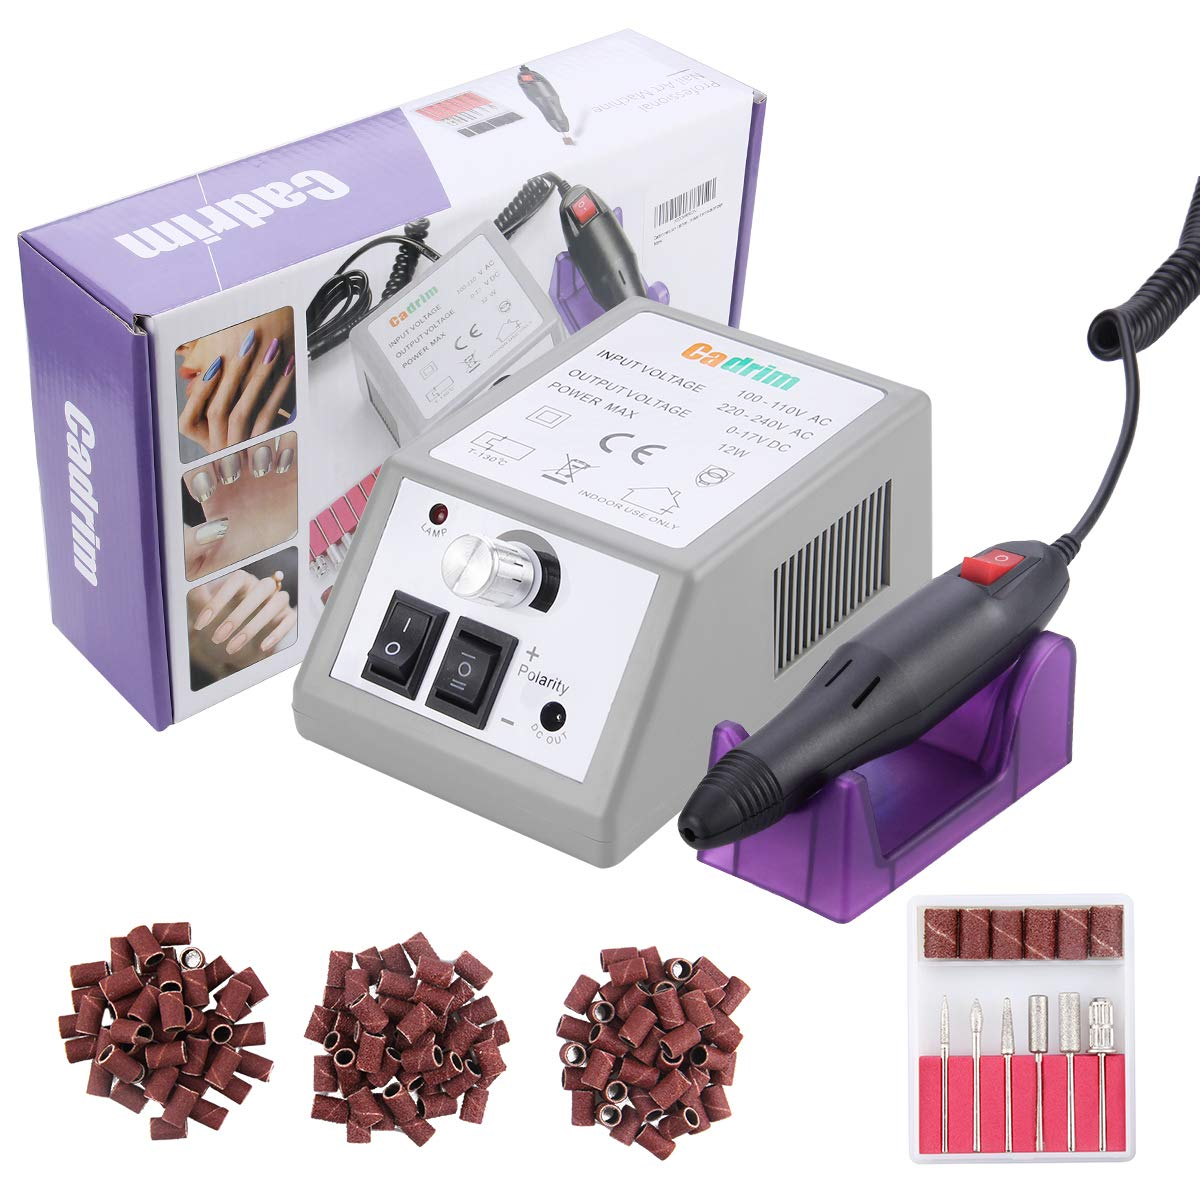 Cadrim Nail Drill Machine Electric Nail File Manicure Pedicure Drill with Nail Drill Bits Kits for Acrylic Nails (20, 000 RPM)